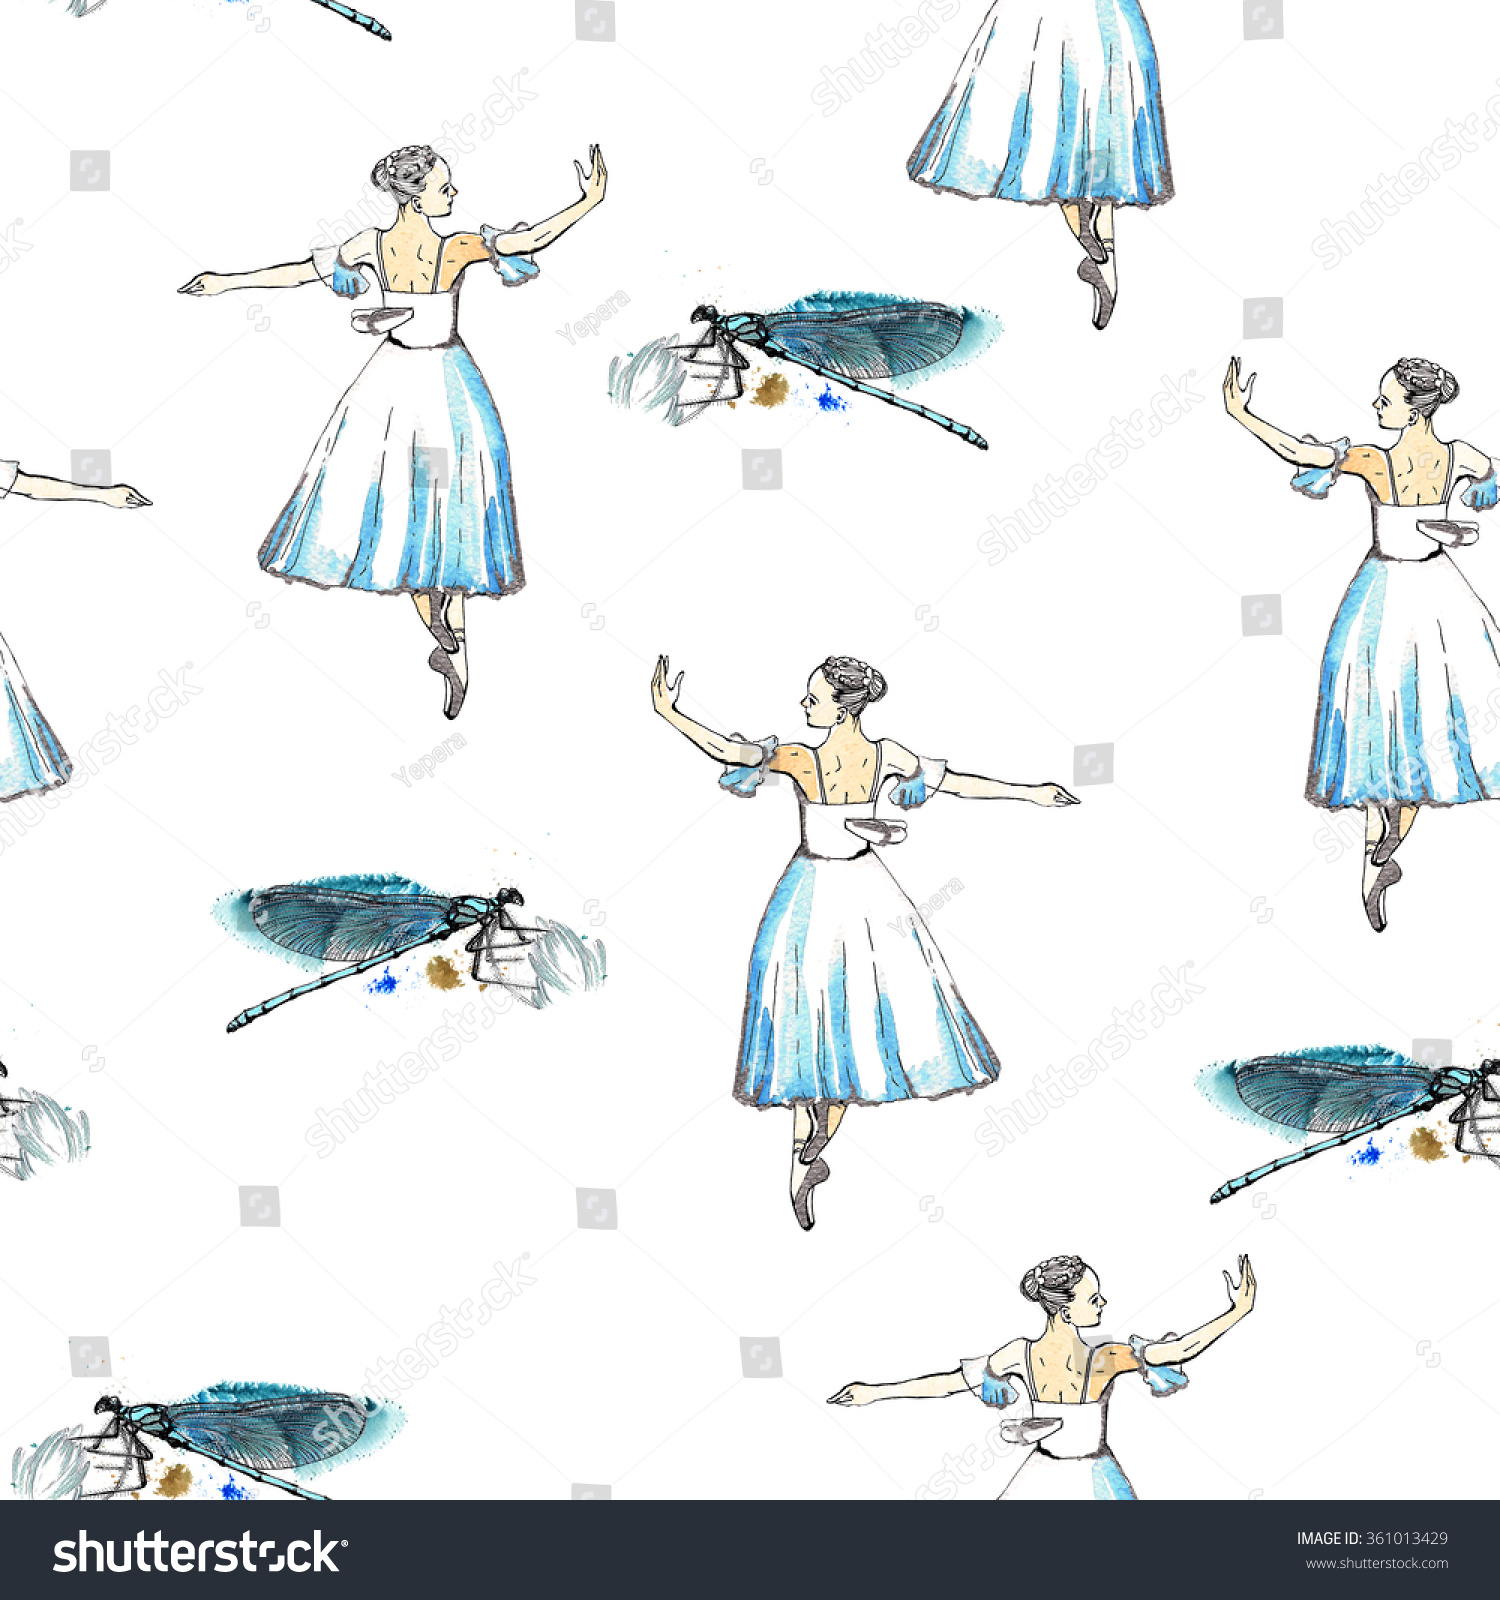 Seamless pattern of ballet dancers royalty free stock photography - Seamless Pattern Of Ballet Dancers And Dragonflies Black And Silver Drawing Watercolor Painting